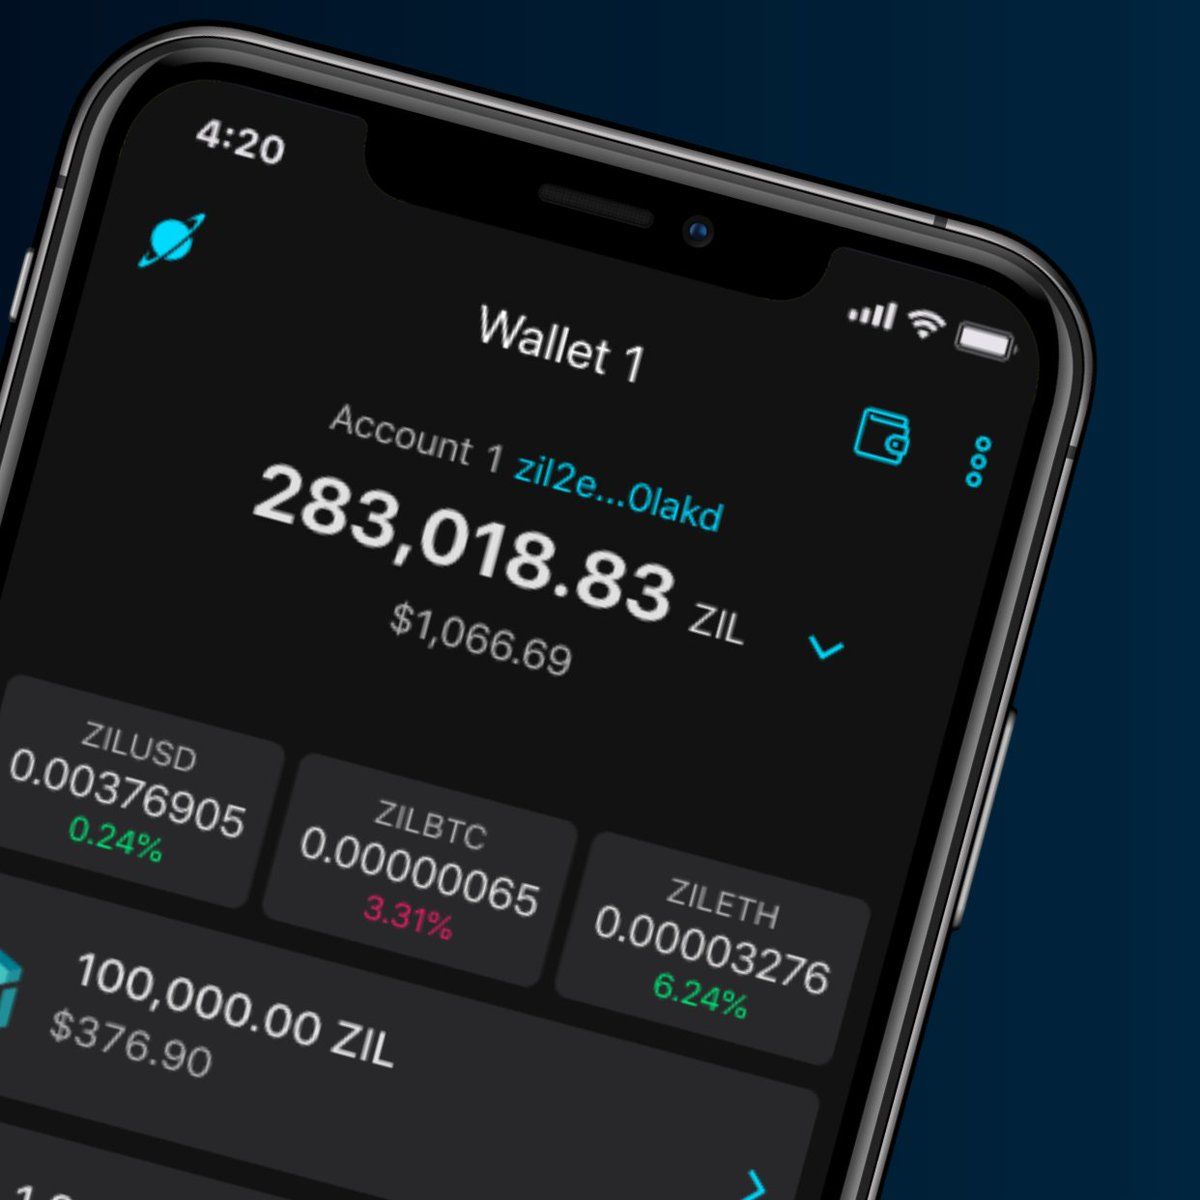 A new mobile friendly cryptocurrency wallet is coming soon… stay tuned!  #zilliqa #xsgd #zrc2 #eth #erc20pic.twitter.com/9bIv2SxQC7